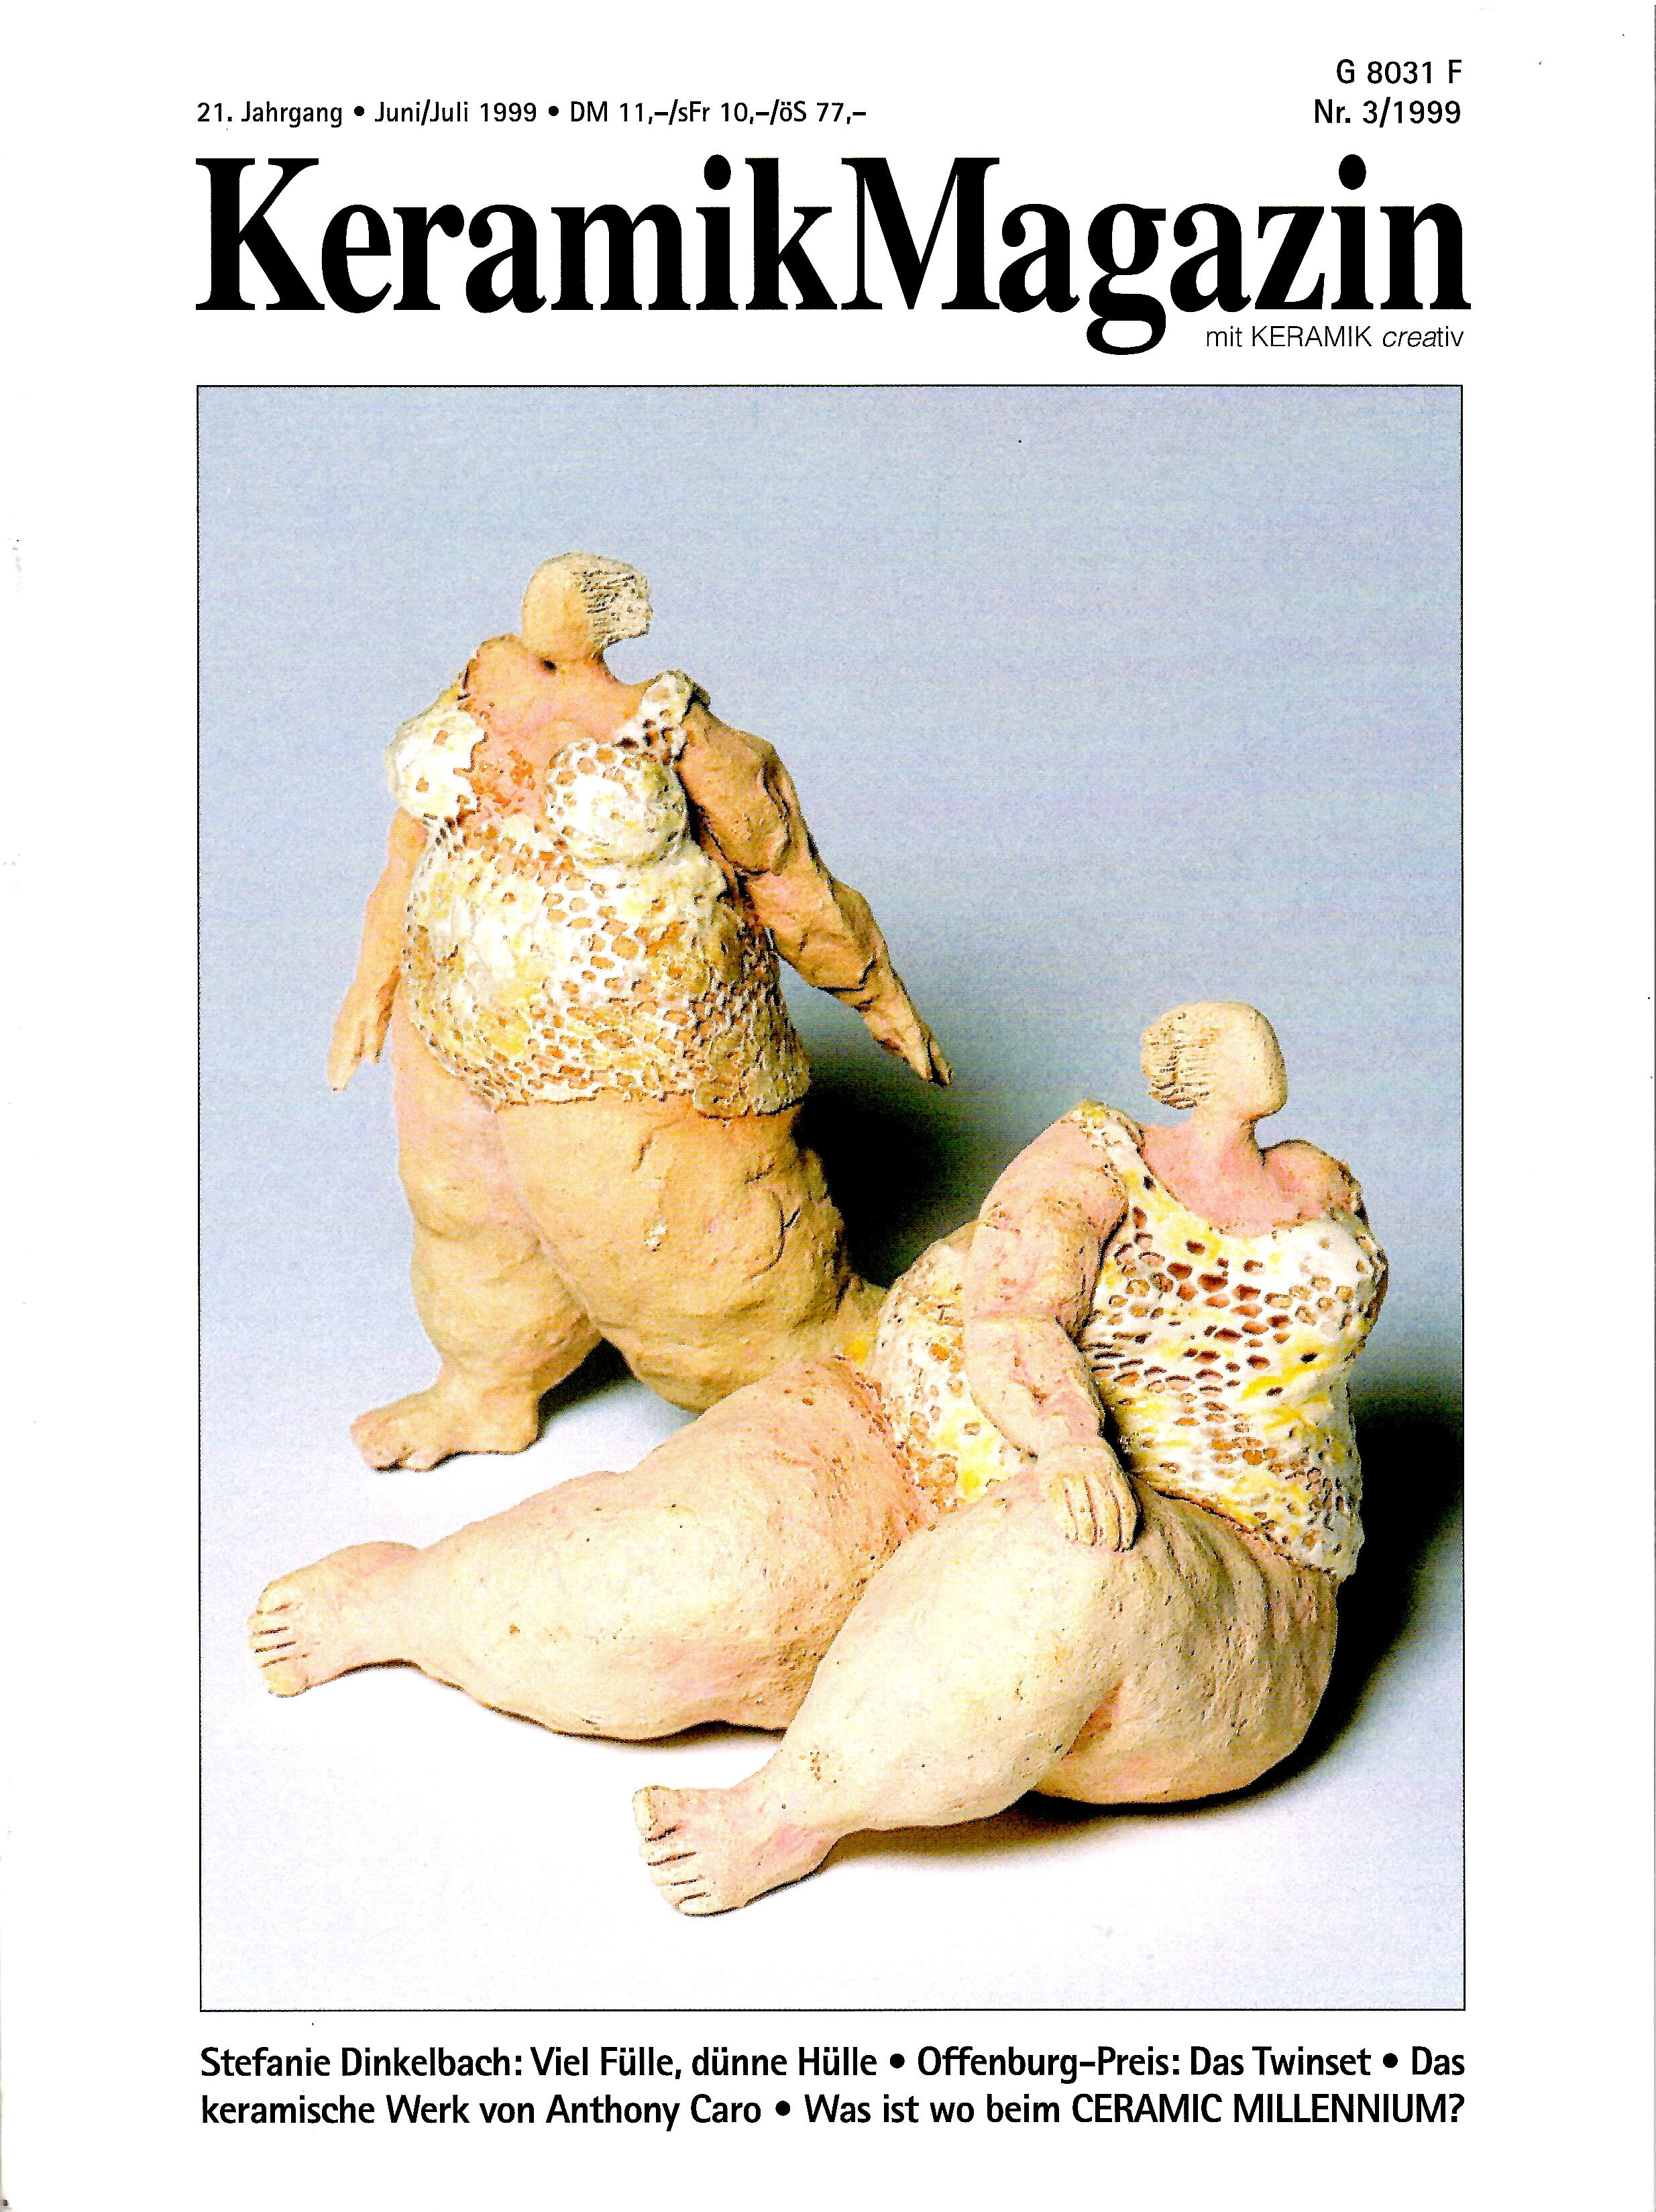 Image for Nr. 3, 1999; KERAMIK MAGAZIN